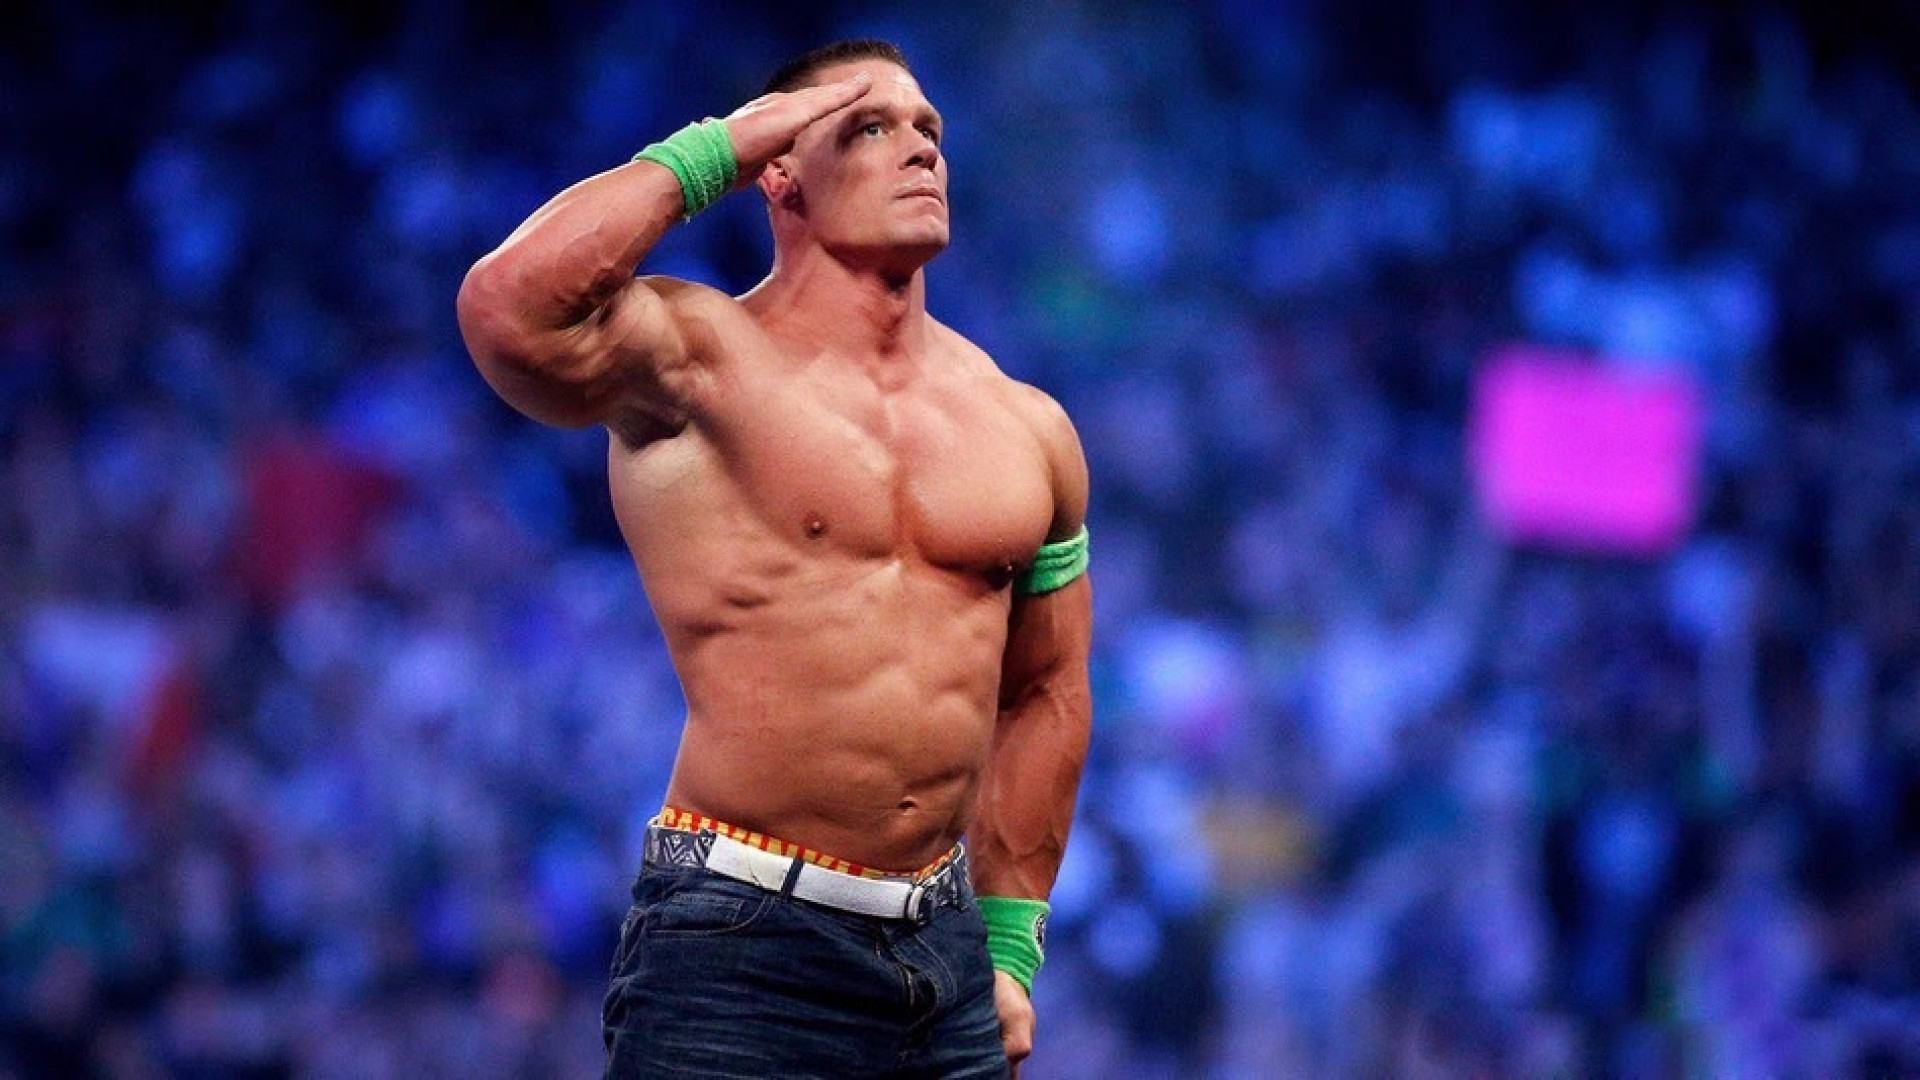 John Cena Wallpapers HD wallpaperwiki